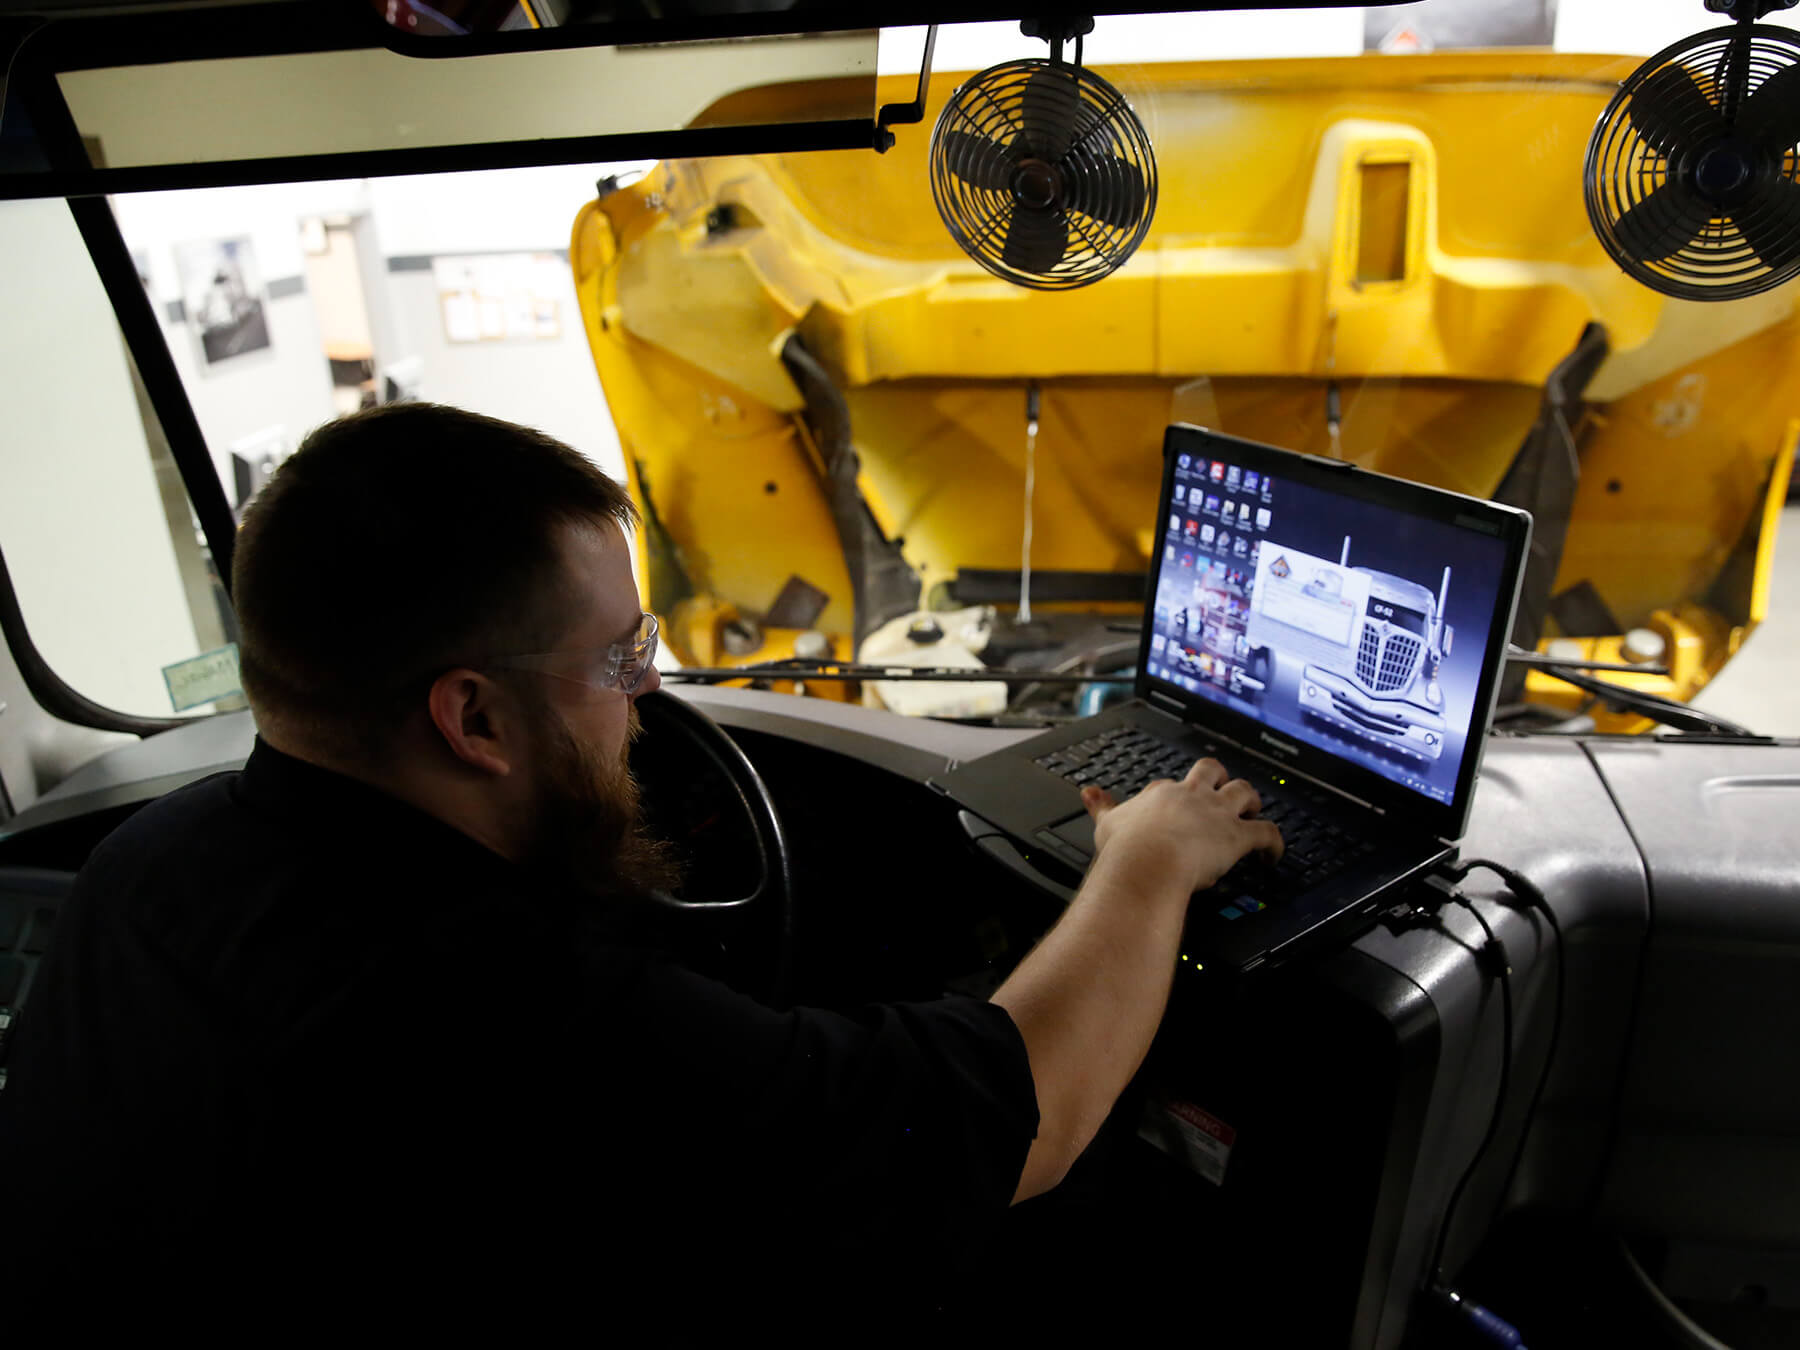 UTI student working inside of a diesel truck on a laptop